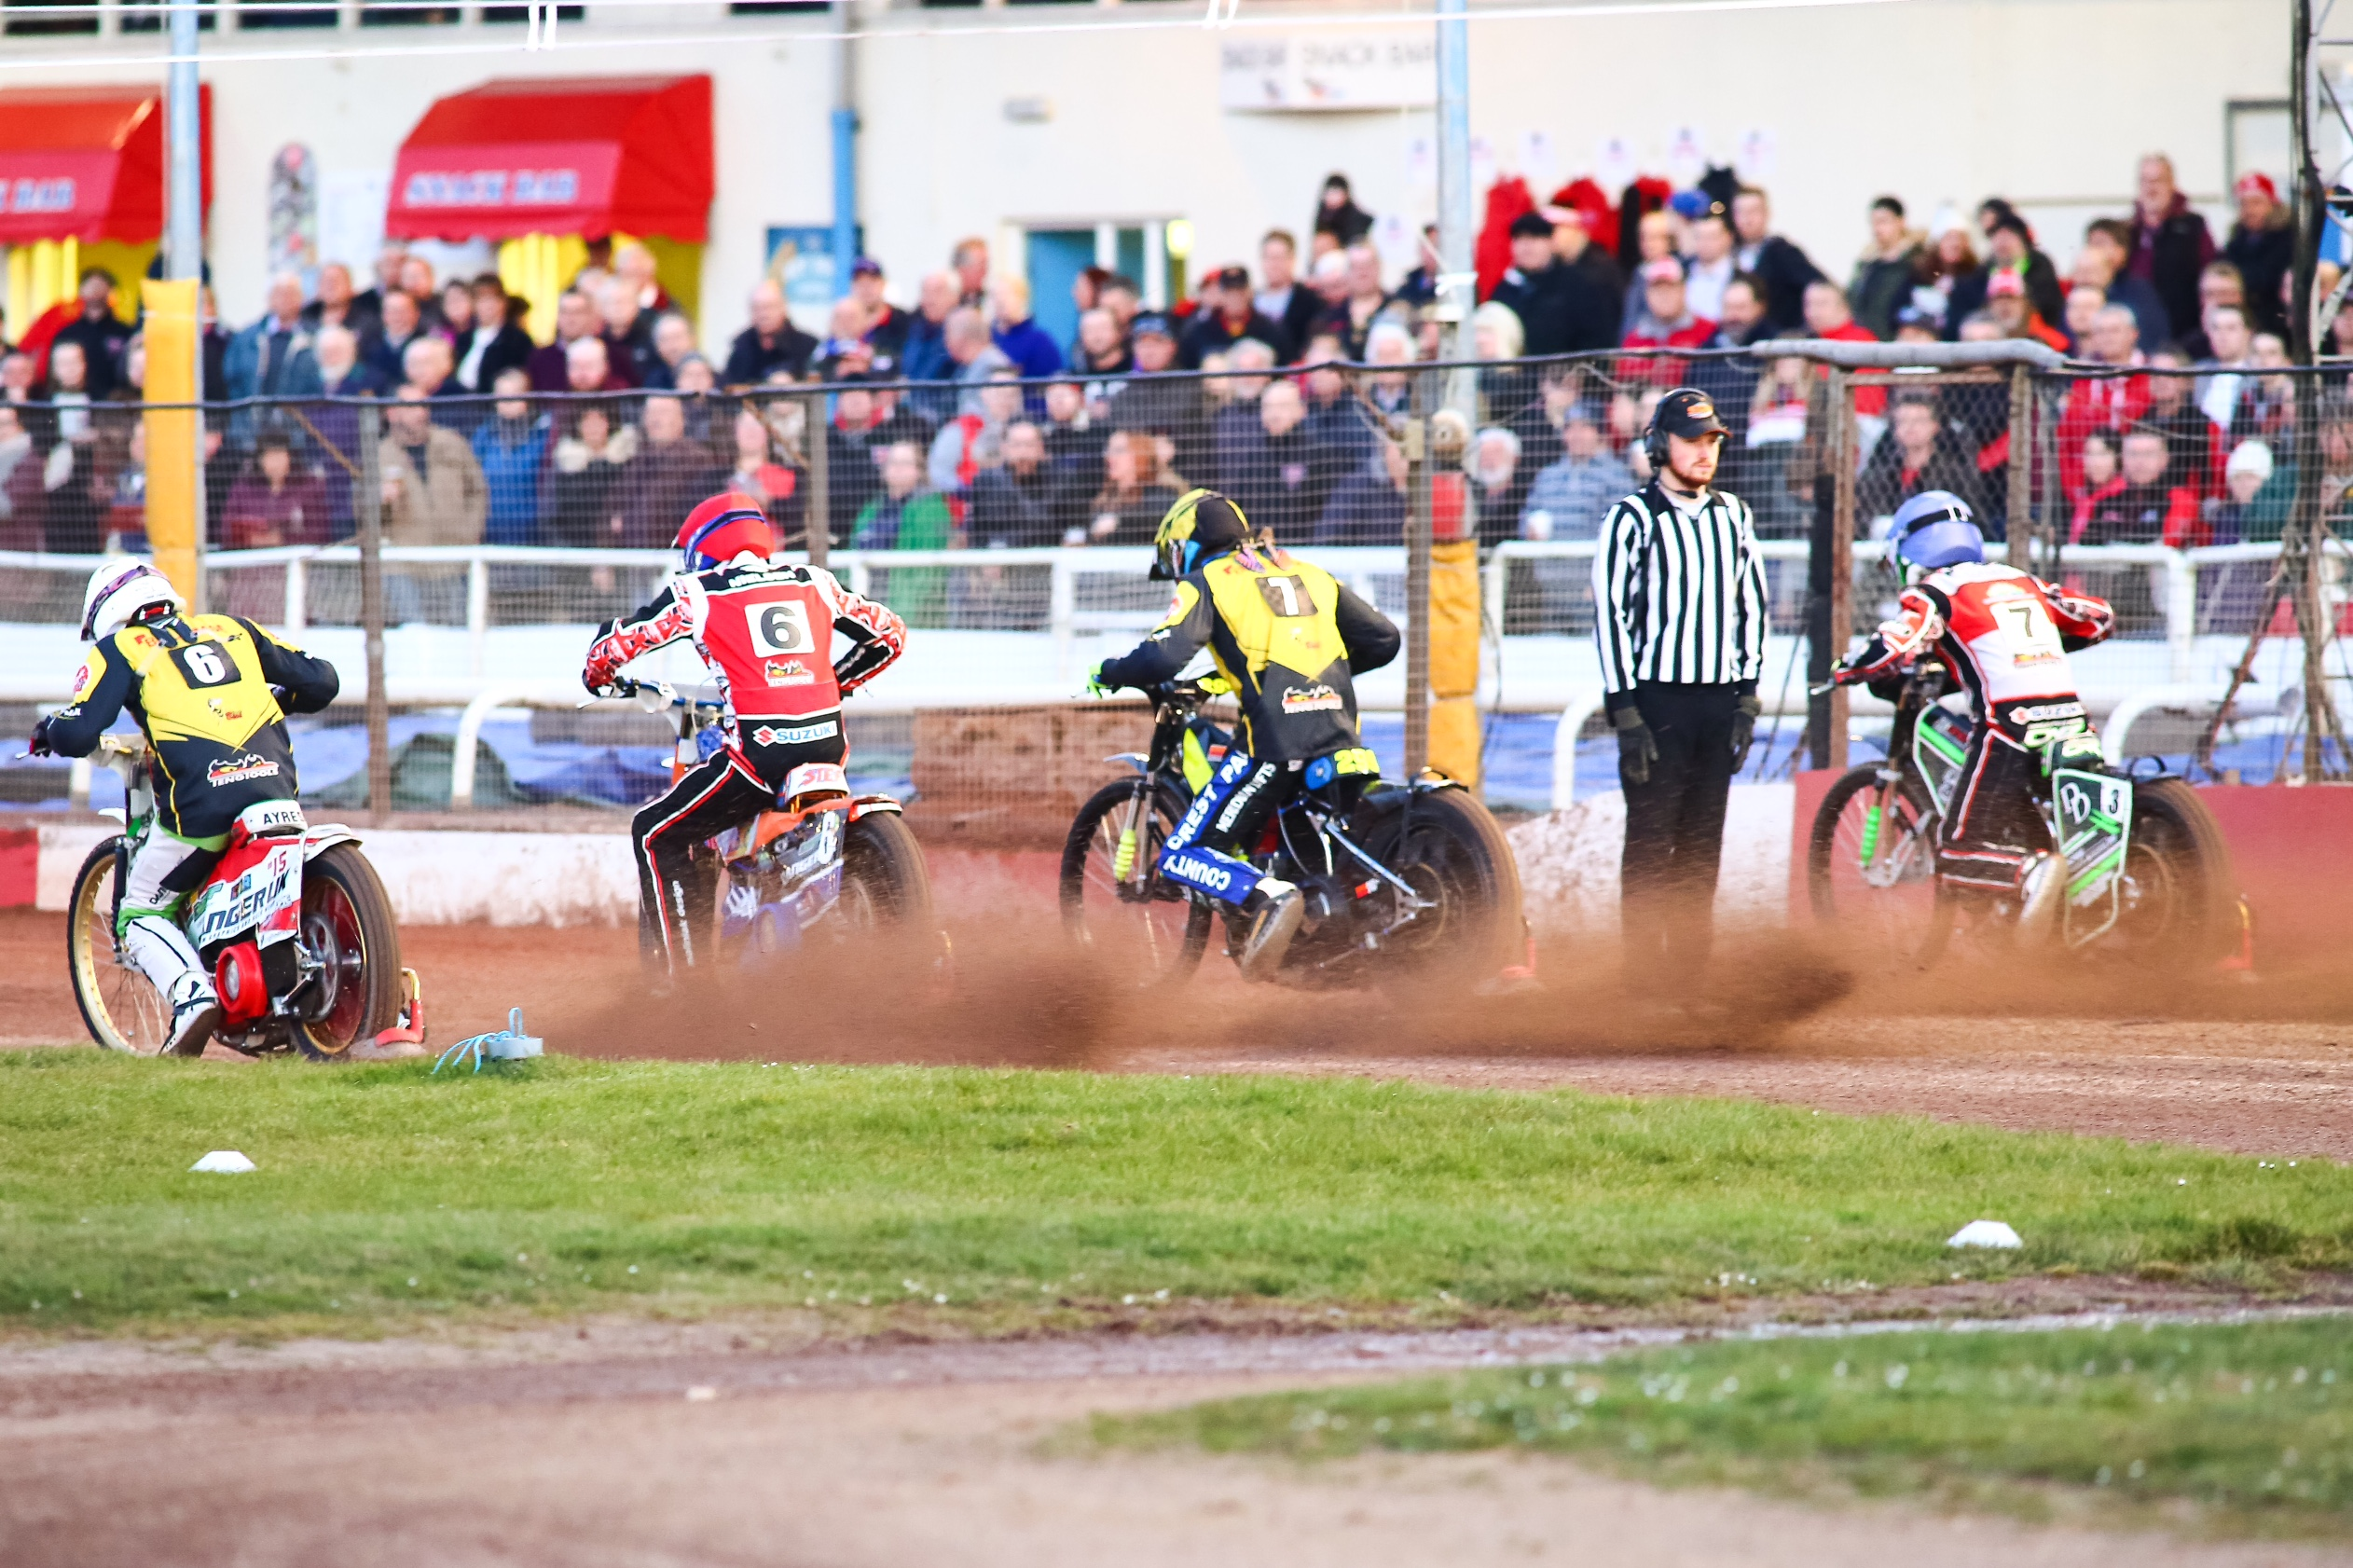 Doyle's Reaction of Wins Against Both the Leicester Lions and Somerset Rebels